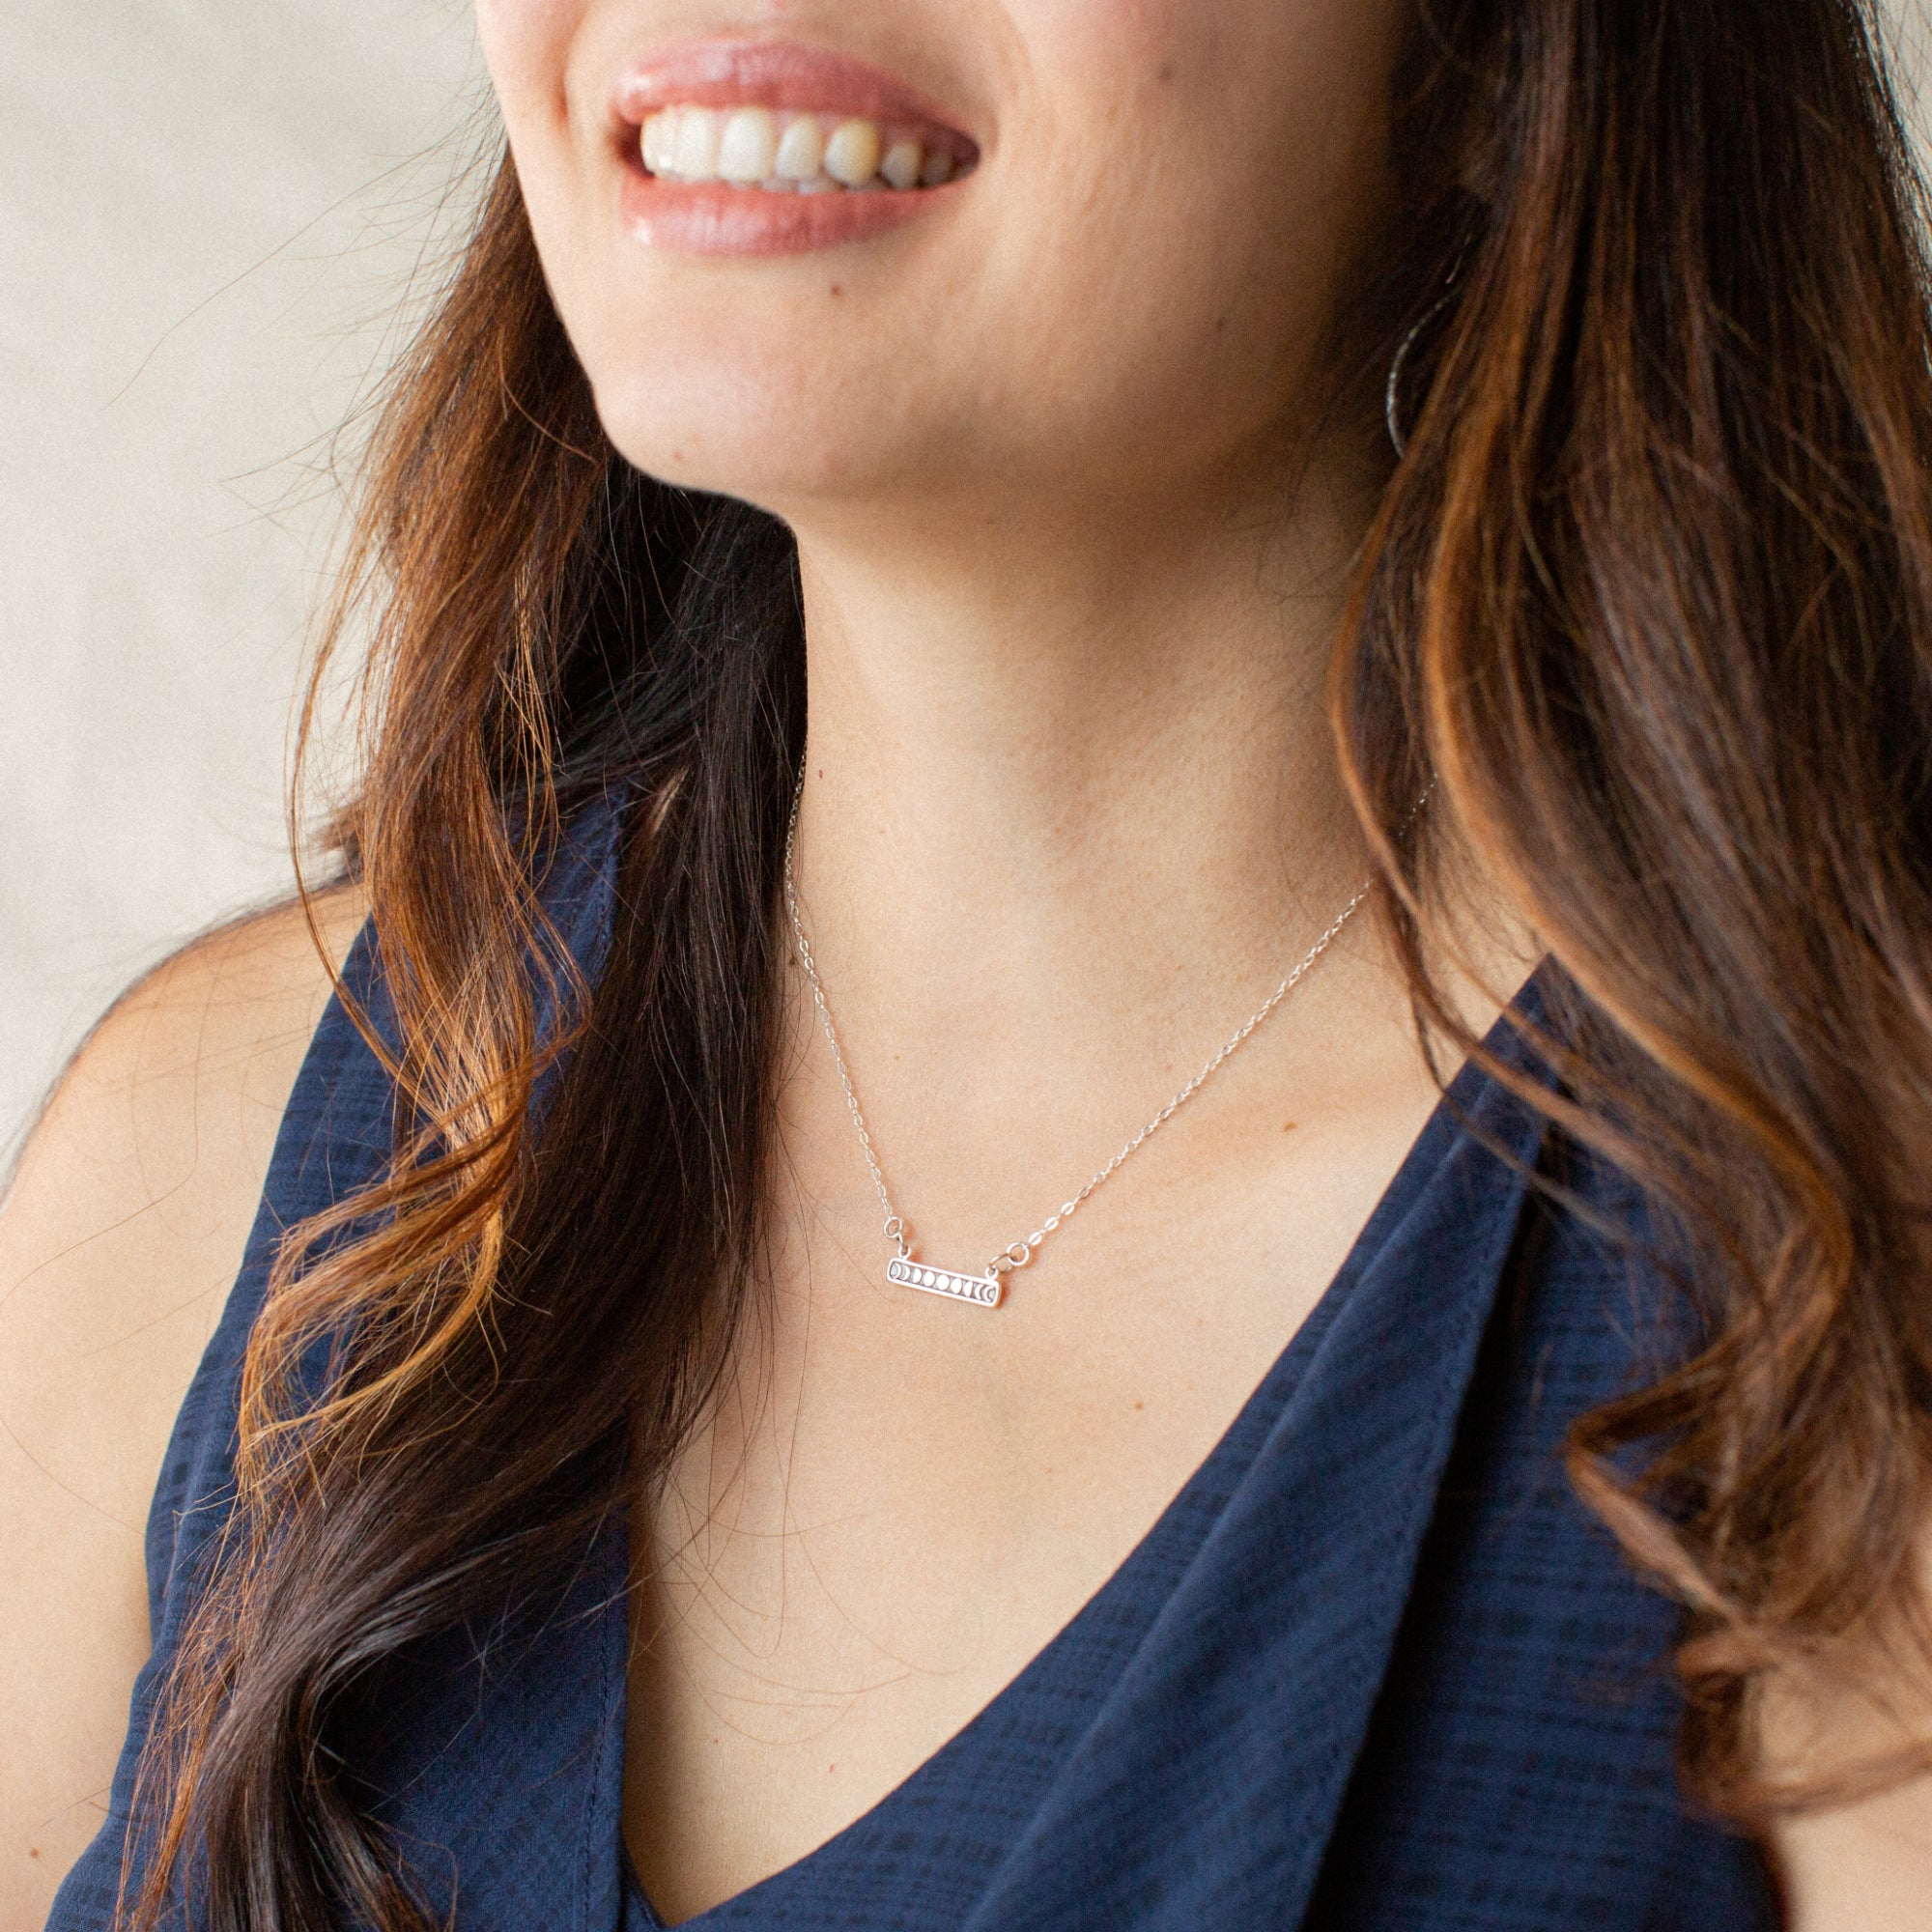 Woman in Blue Shirt Smiling and Wearing Silver Moon Phases Pendant Necklace 'You Are the Change' Model Photo by Asha Blooms